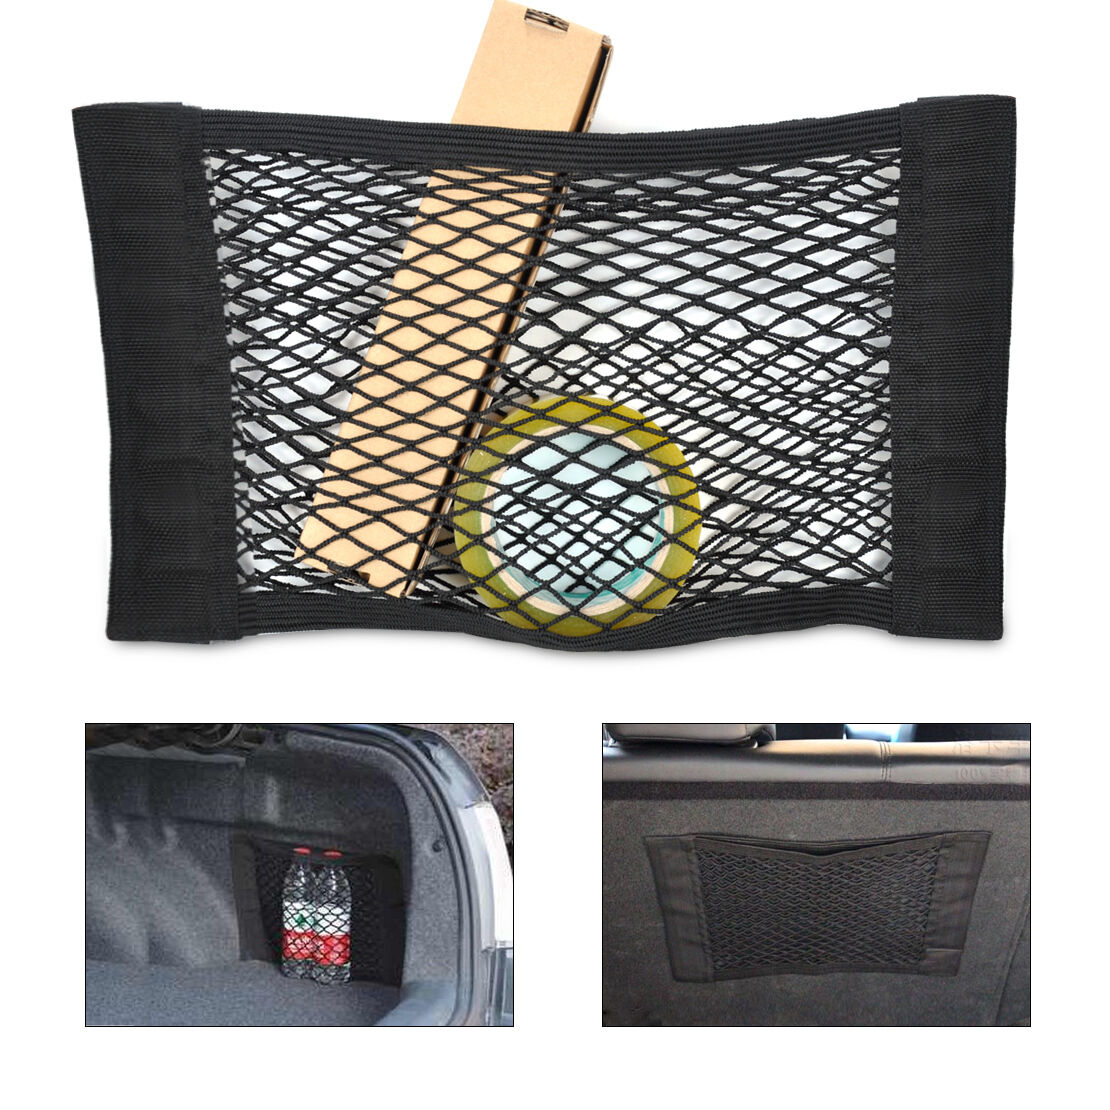 universal car truck seat rear pocket storage organizer nylon net bag w magic tap aud. Black Bedroom Furniture Sets. Home Design Ideas